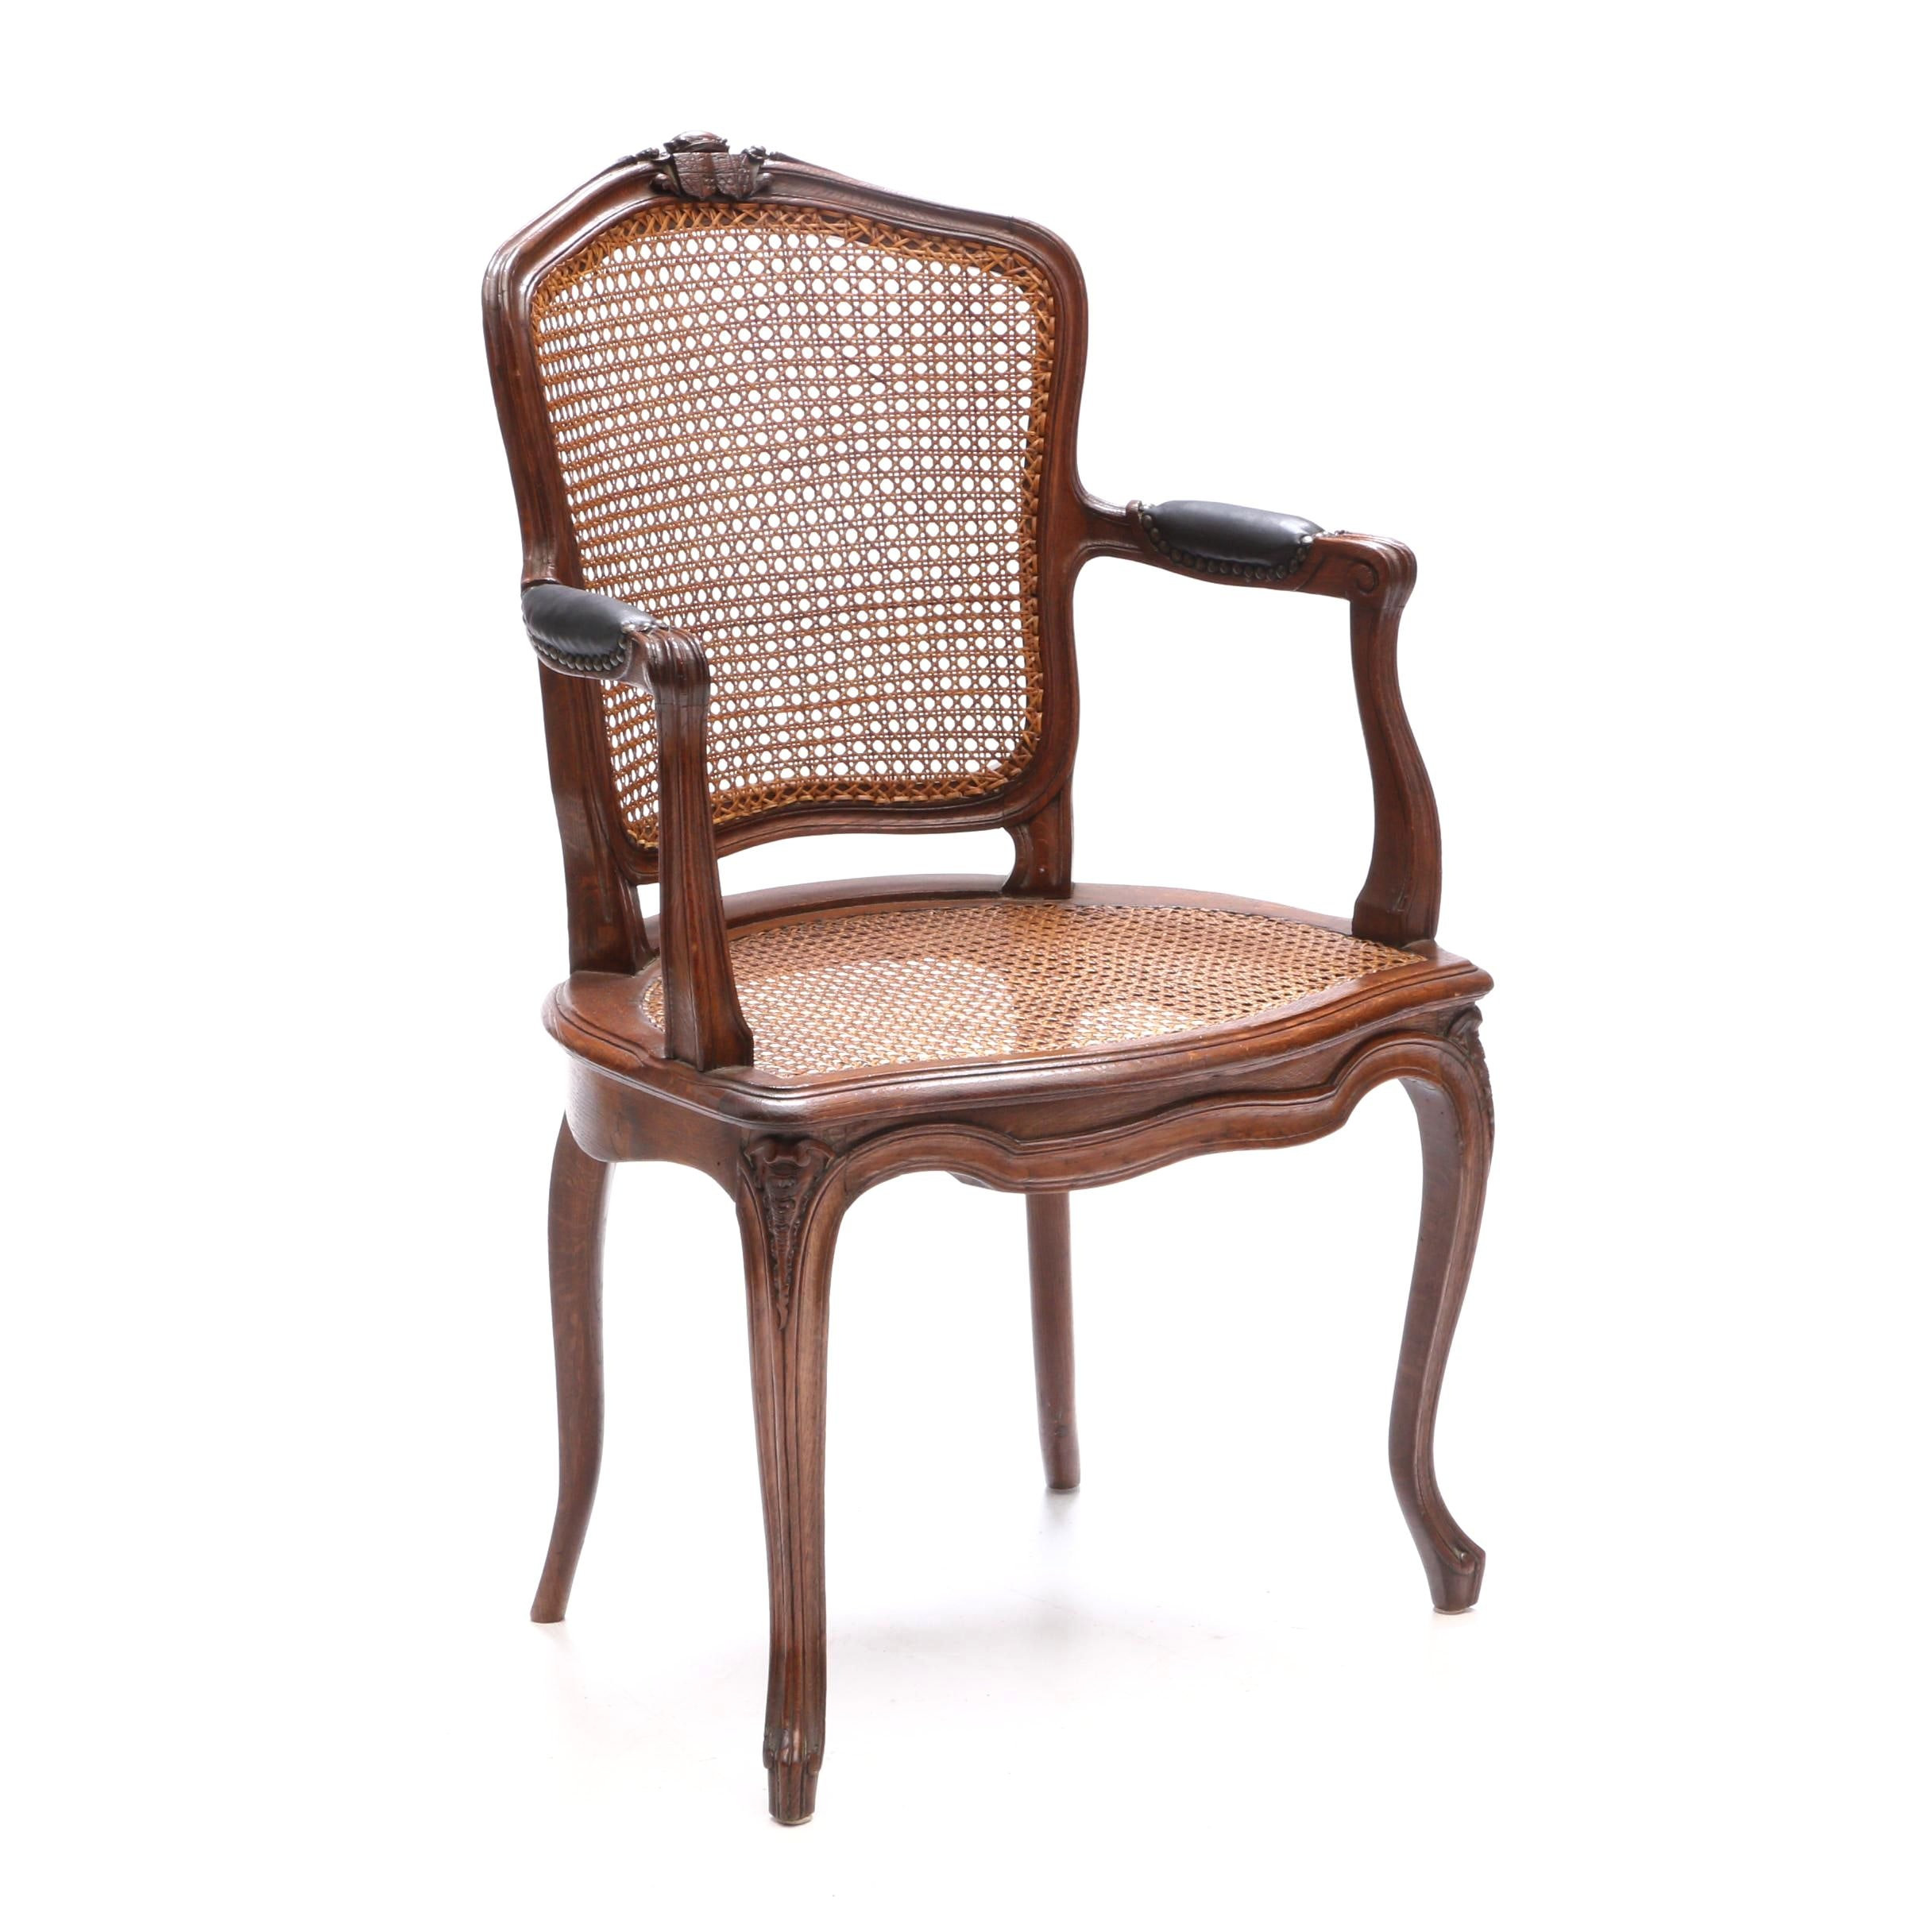 Vintage French Provincial Style Armchair